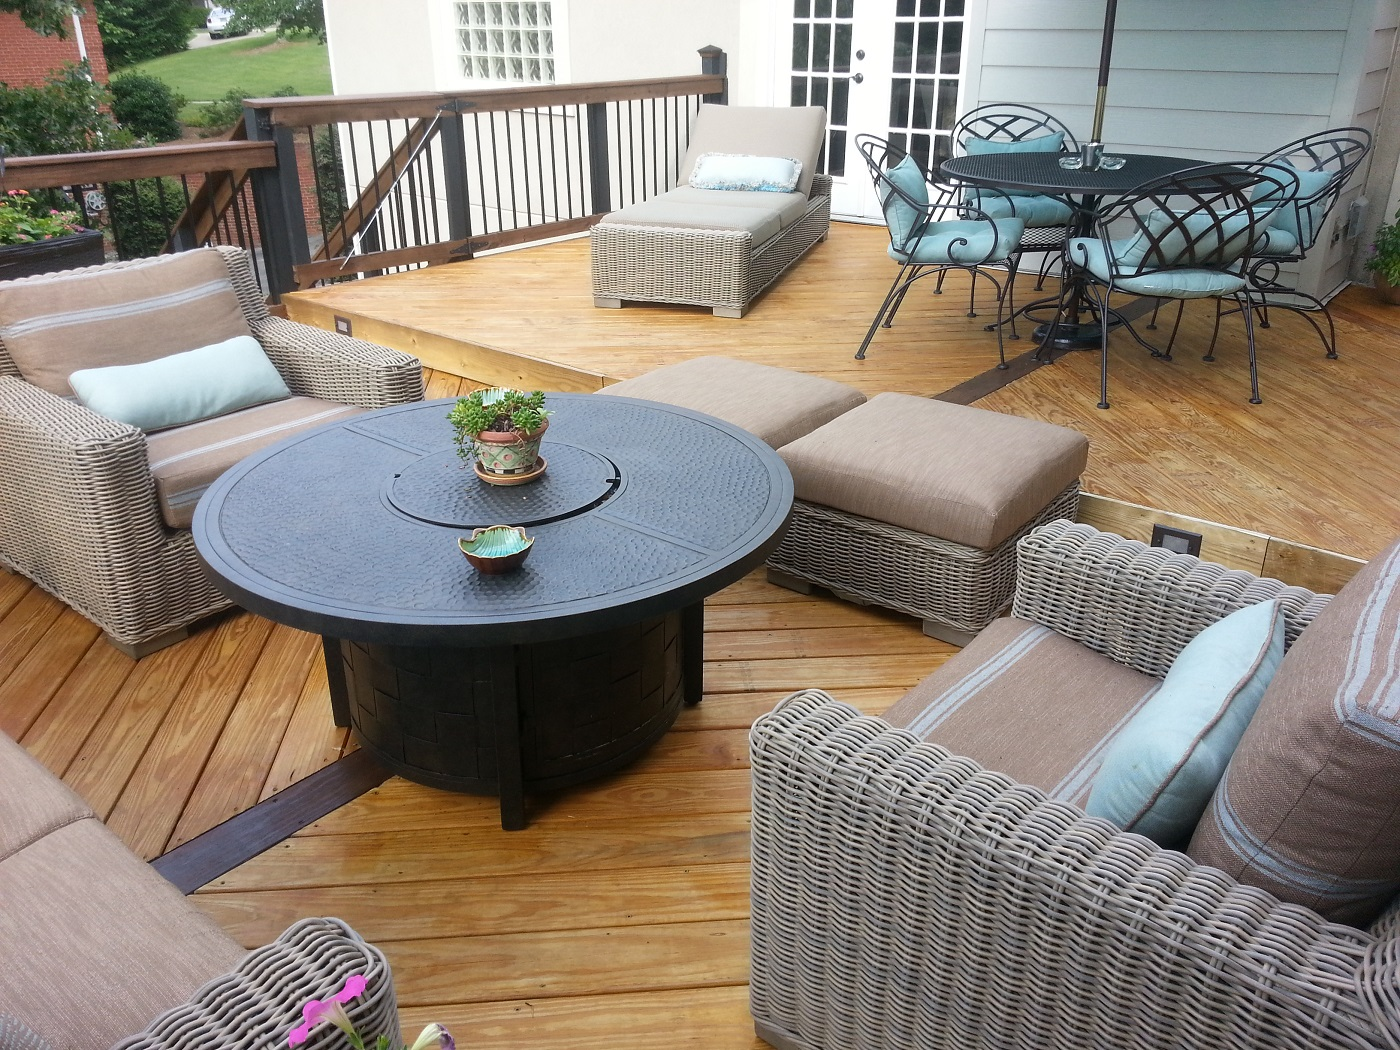 We-are-your-source-for-custom-wood-and-low-maintenance-decks